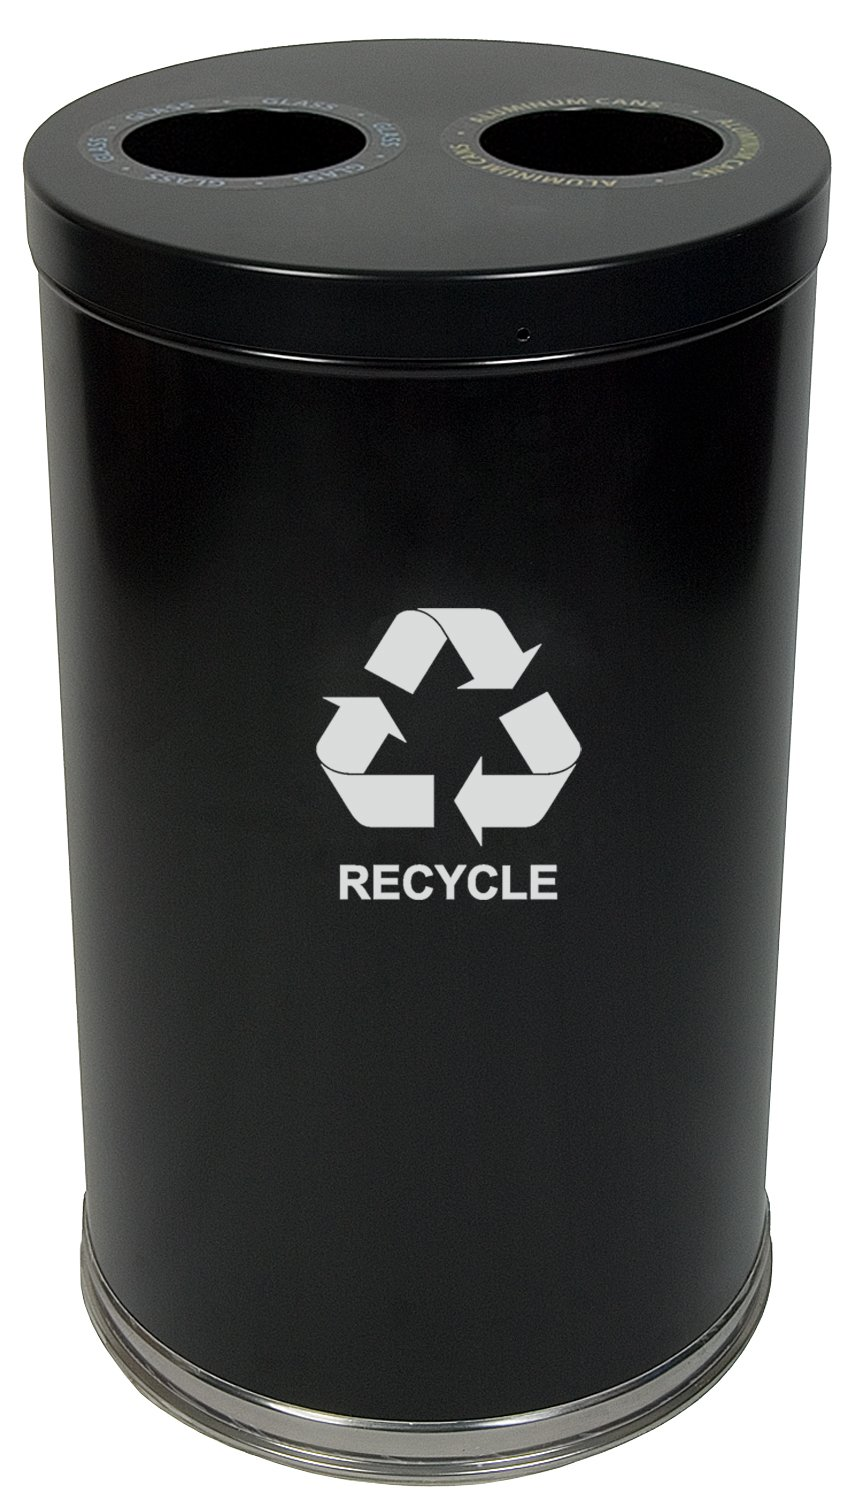 Witt Industries 18RTBK-2H Steel 36-Gallon 2 Opening Recycling Container with 2 Plastic Liners, Legend ''Recycle'', Round, 18'' Diameter x 33'' Height, Black